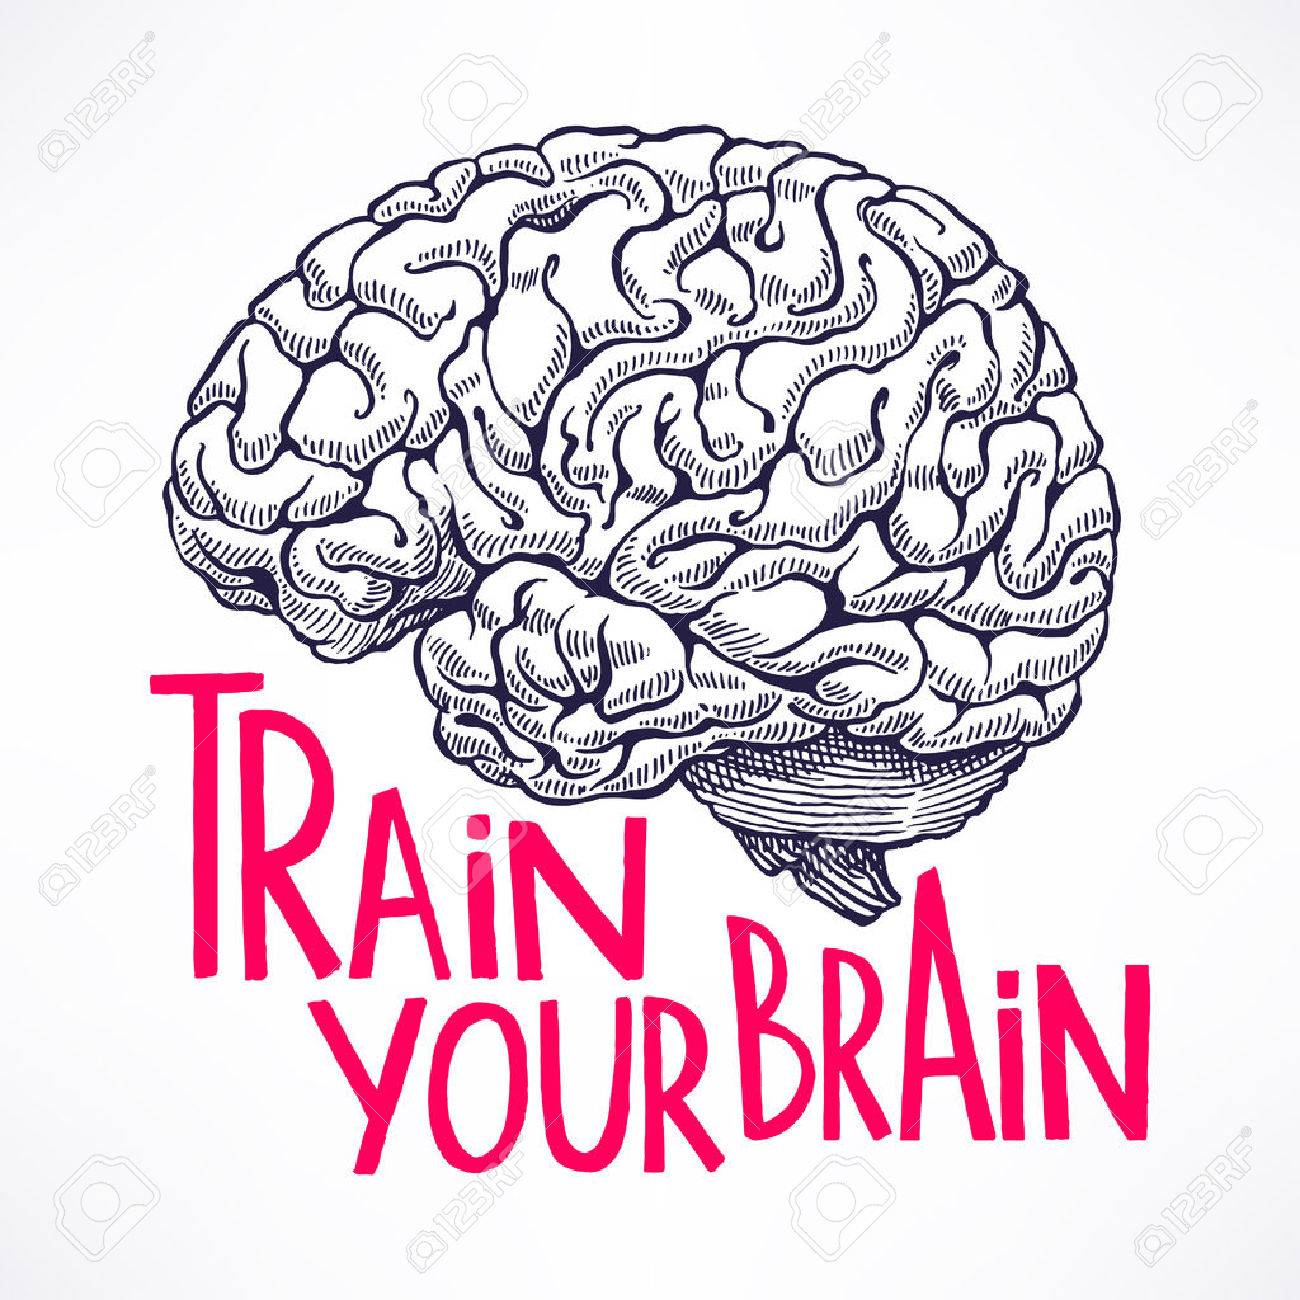 Train your brain. beautiful card with a human brain and motivational quote. hand-drawn illustration - 44907991